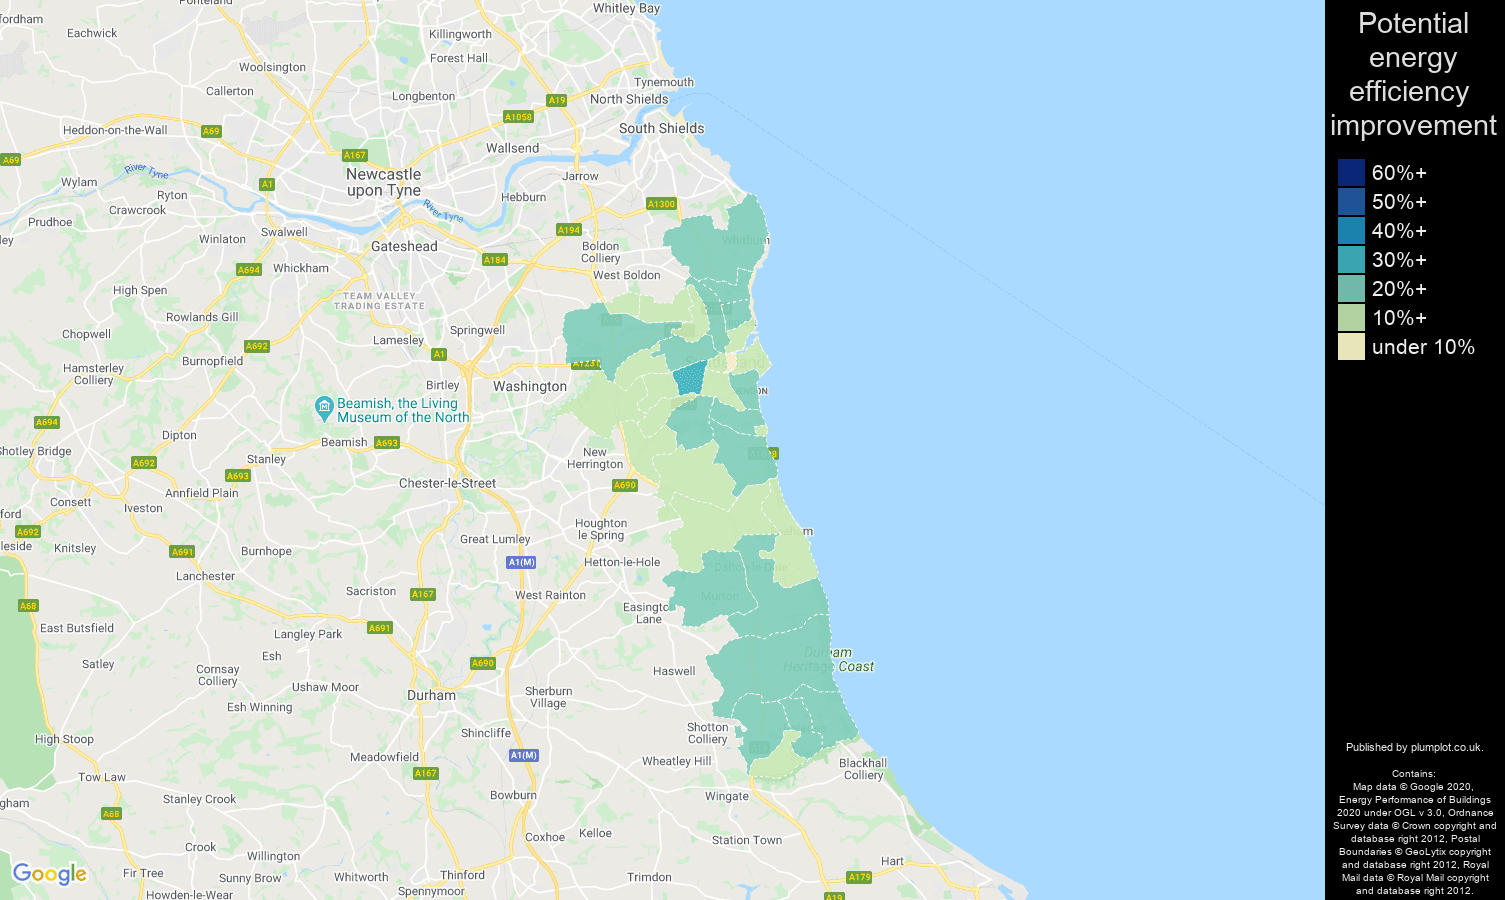 Sunderland map of potential energy efficiency improvement of properties